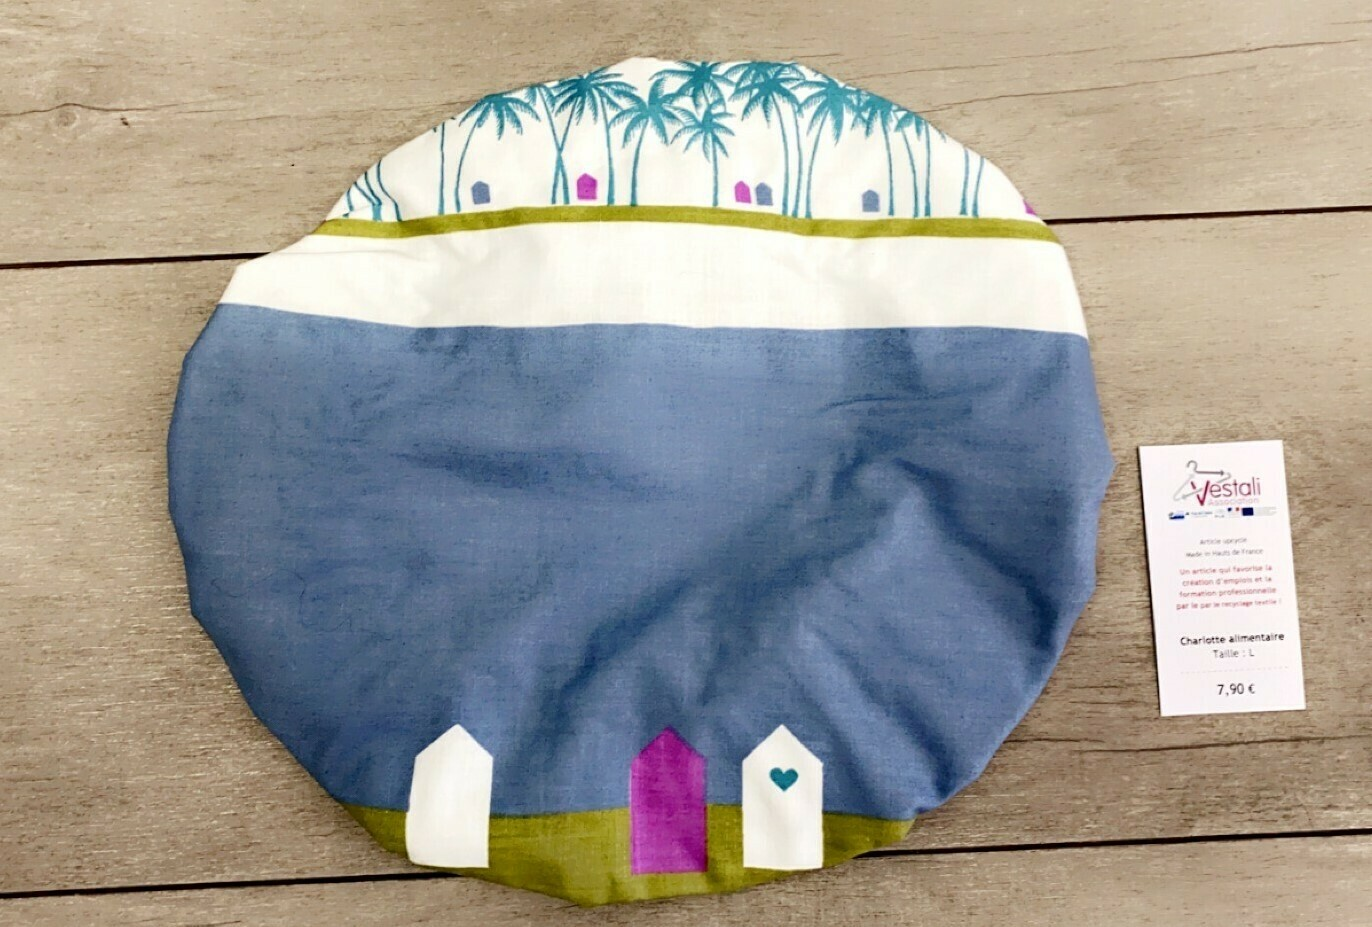 Charlotte Alimentaire Taille L - Plage